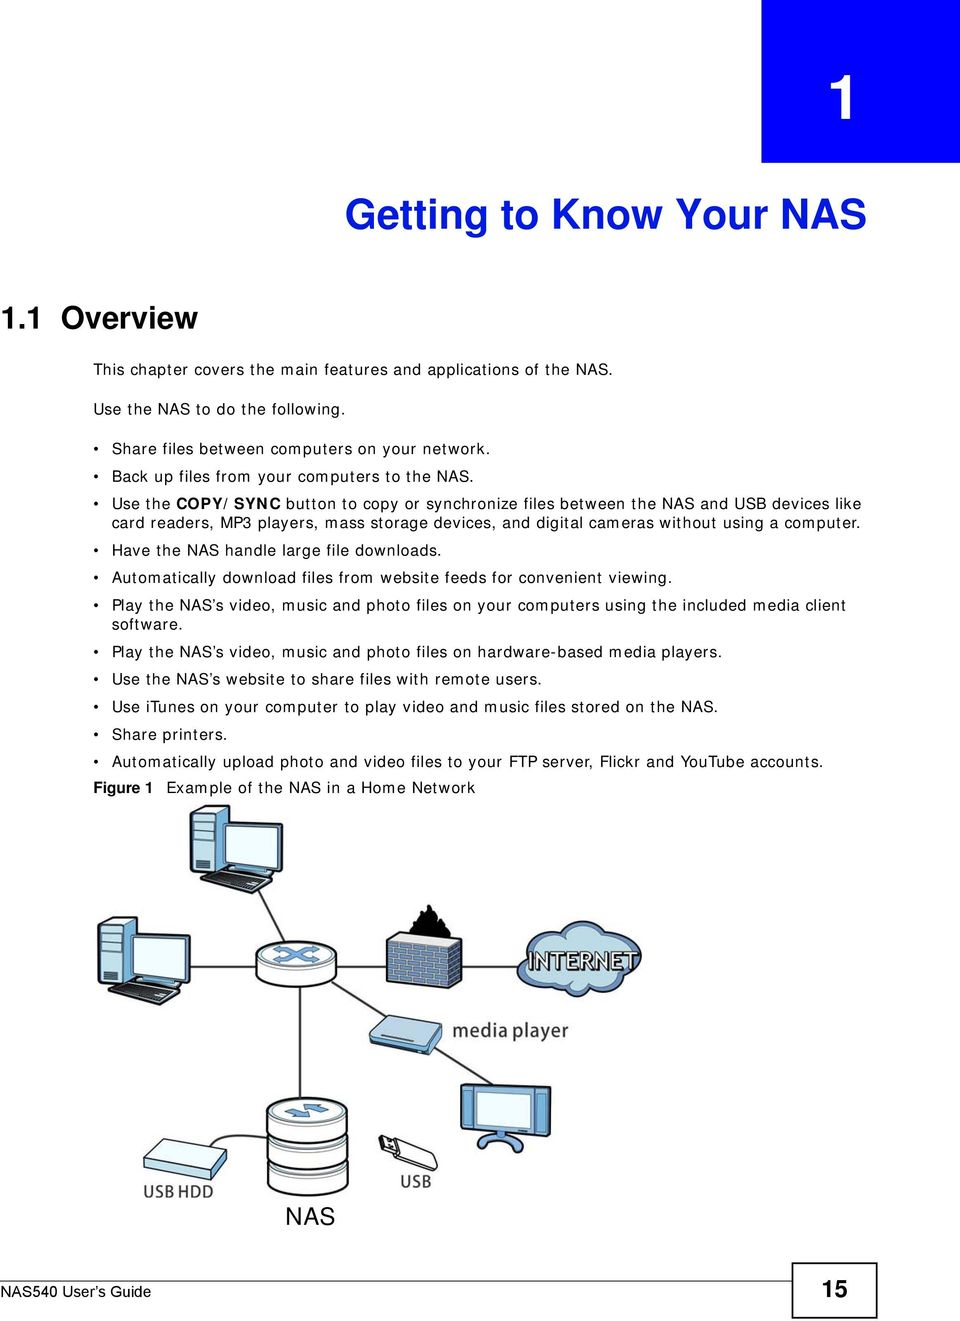 Use the COPY/SYNC button to copy or synchronize files between the NAS and USB devices like card readers, MP3 players, mass storage devices, and digital cameras without using a computer.